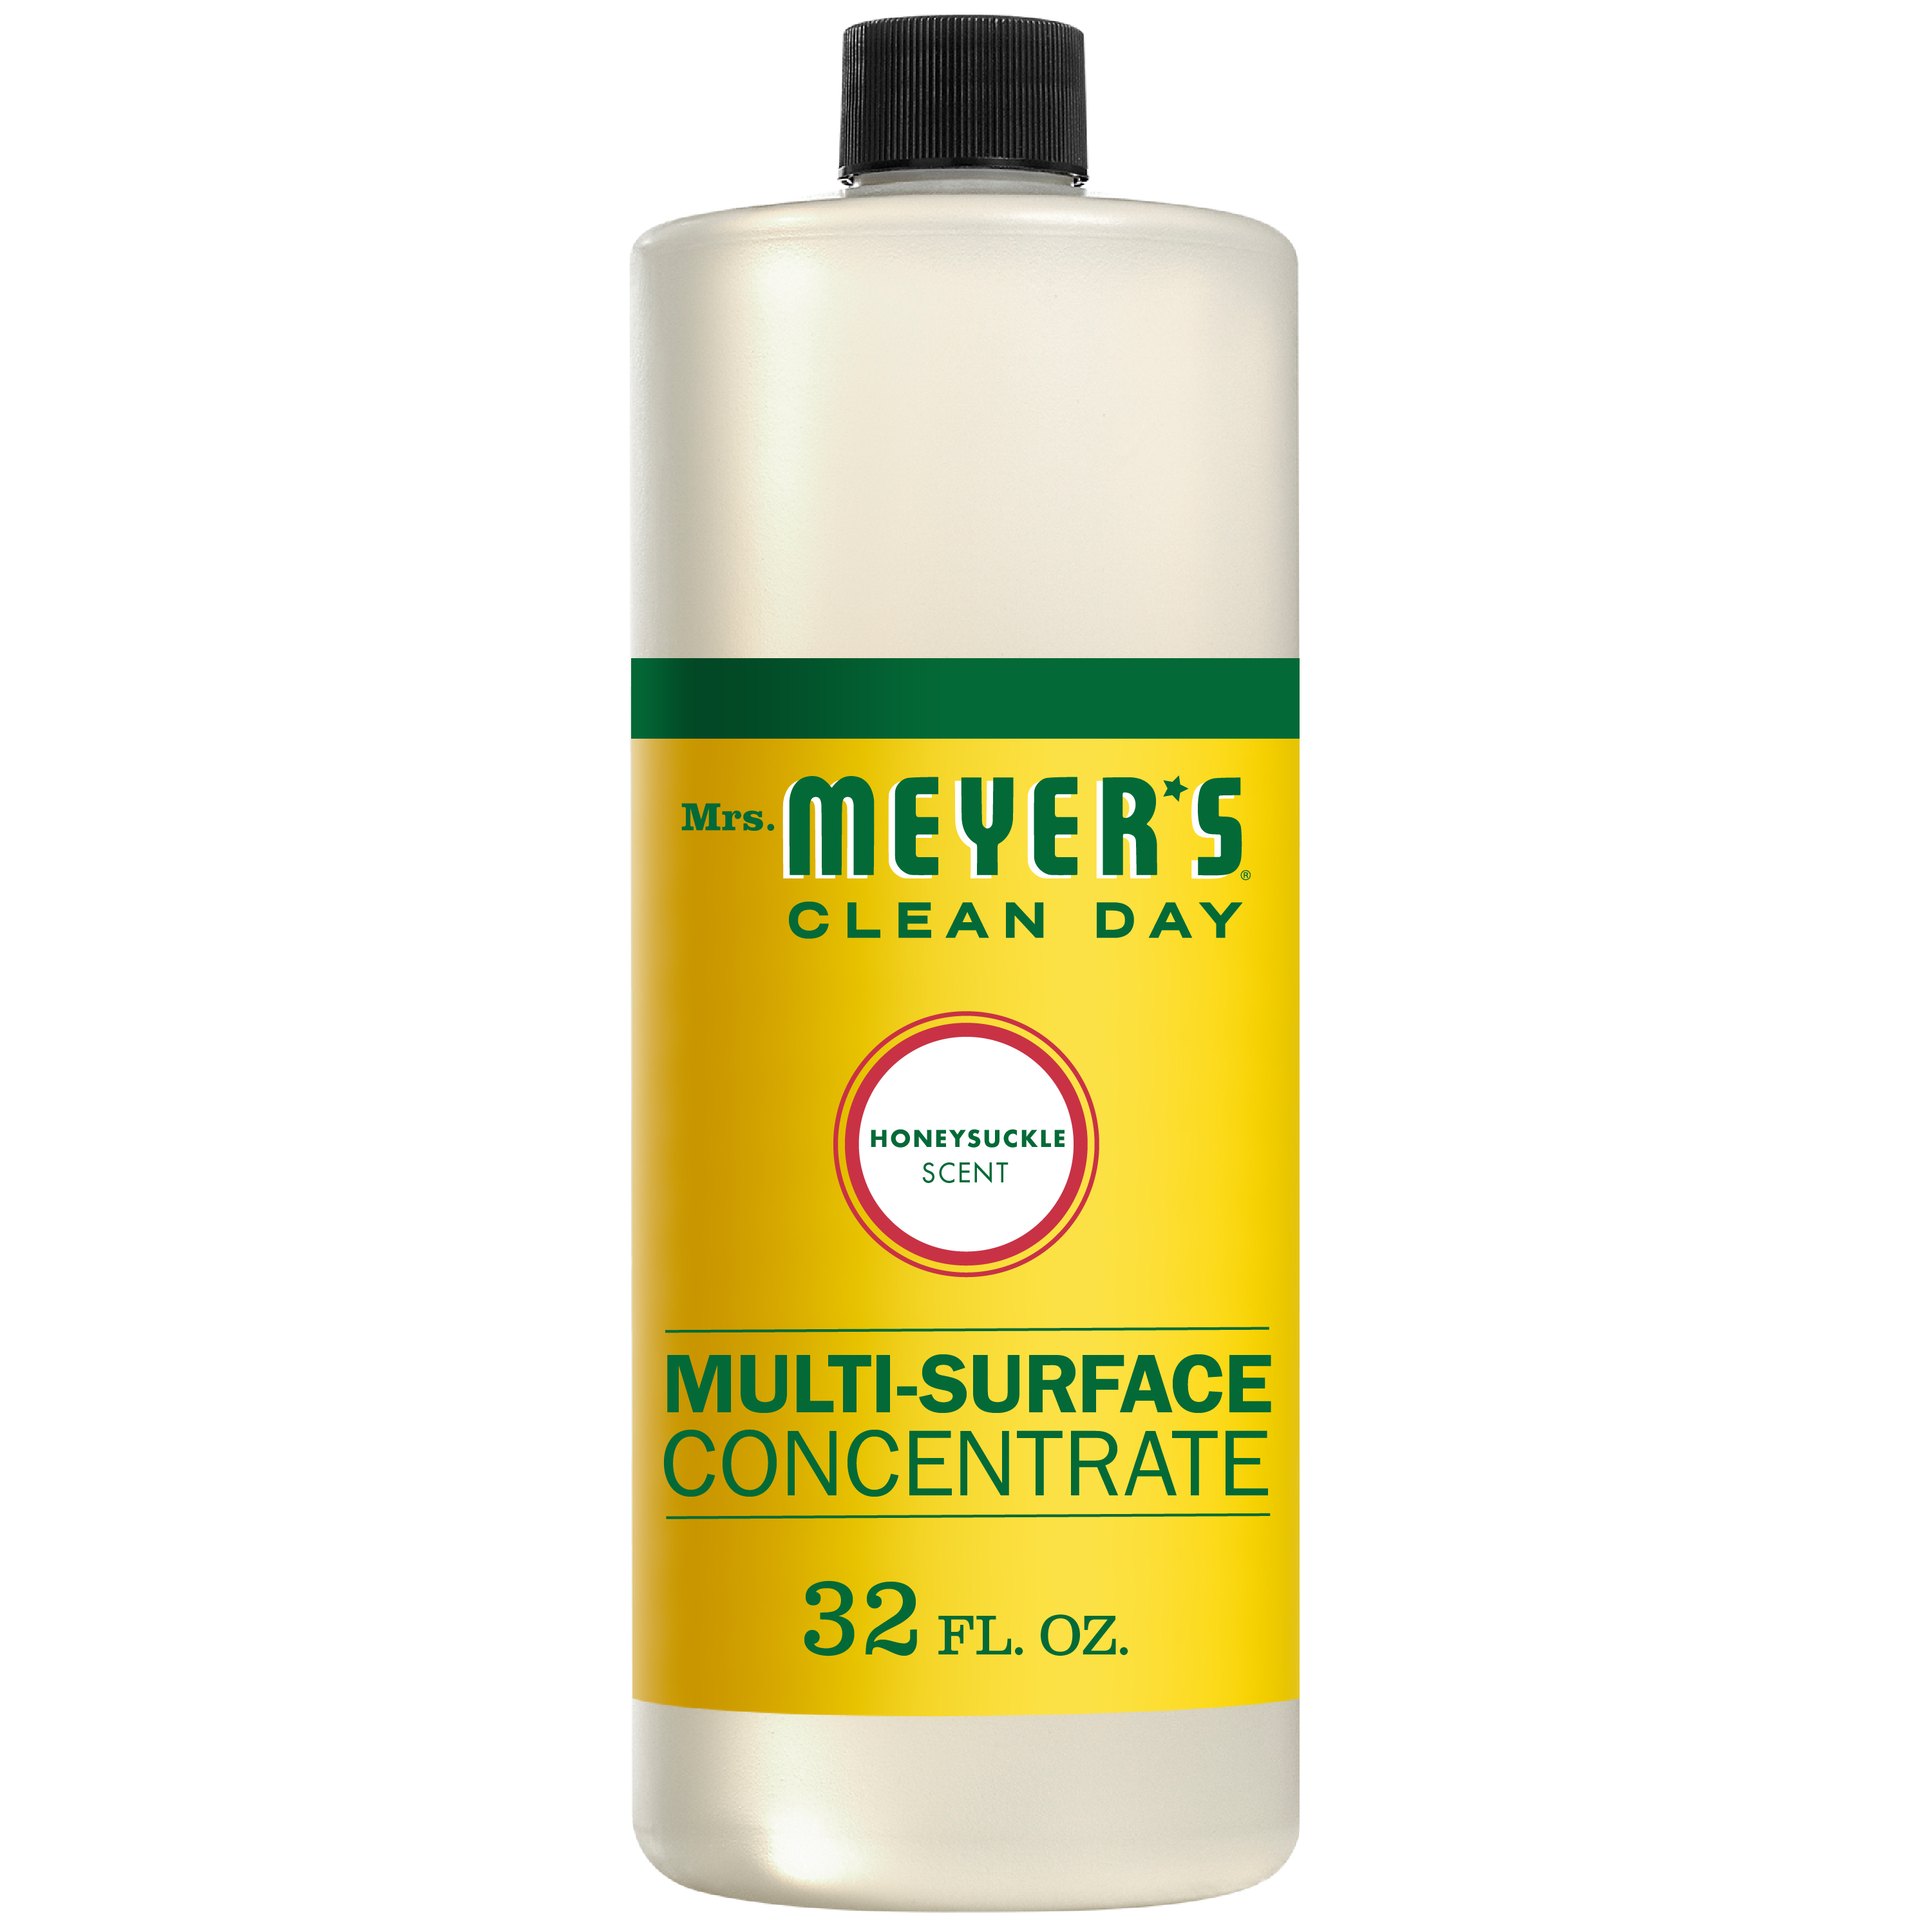 Mrs. Meyer's Clean Day Multi-Surface Concentrate, Honeysuckle, 32 fl oz